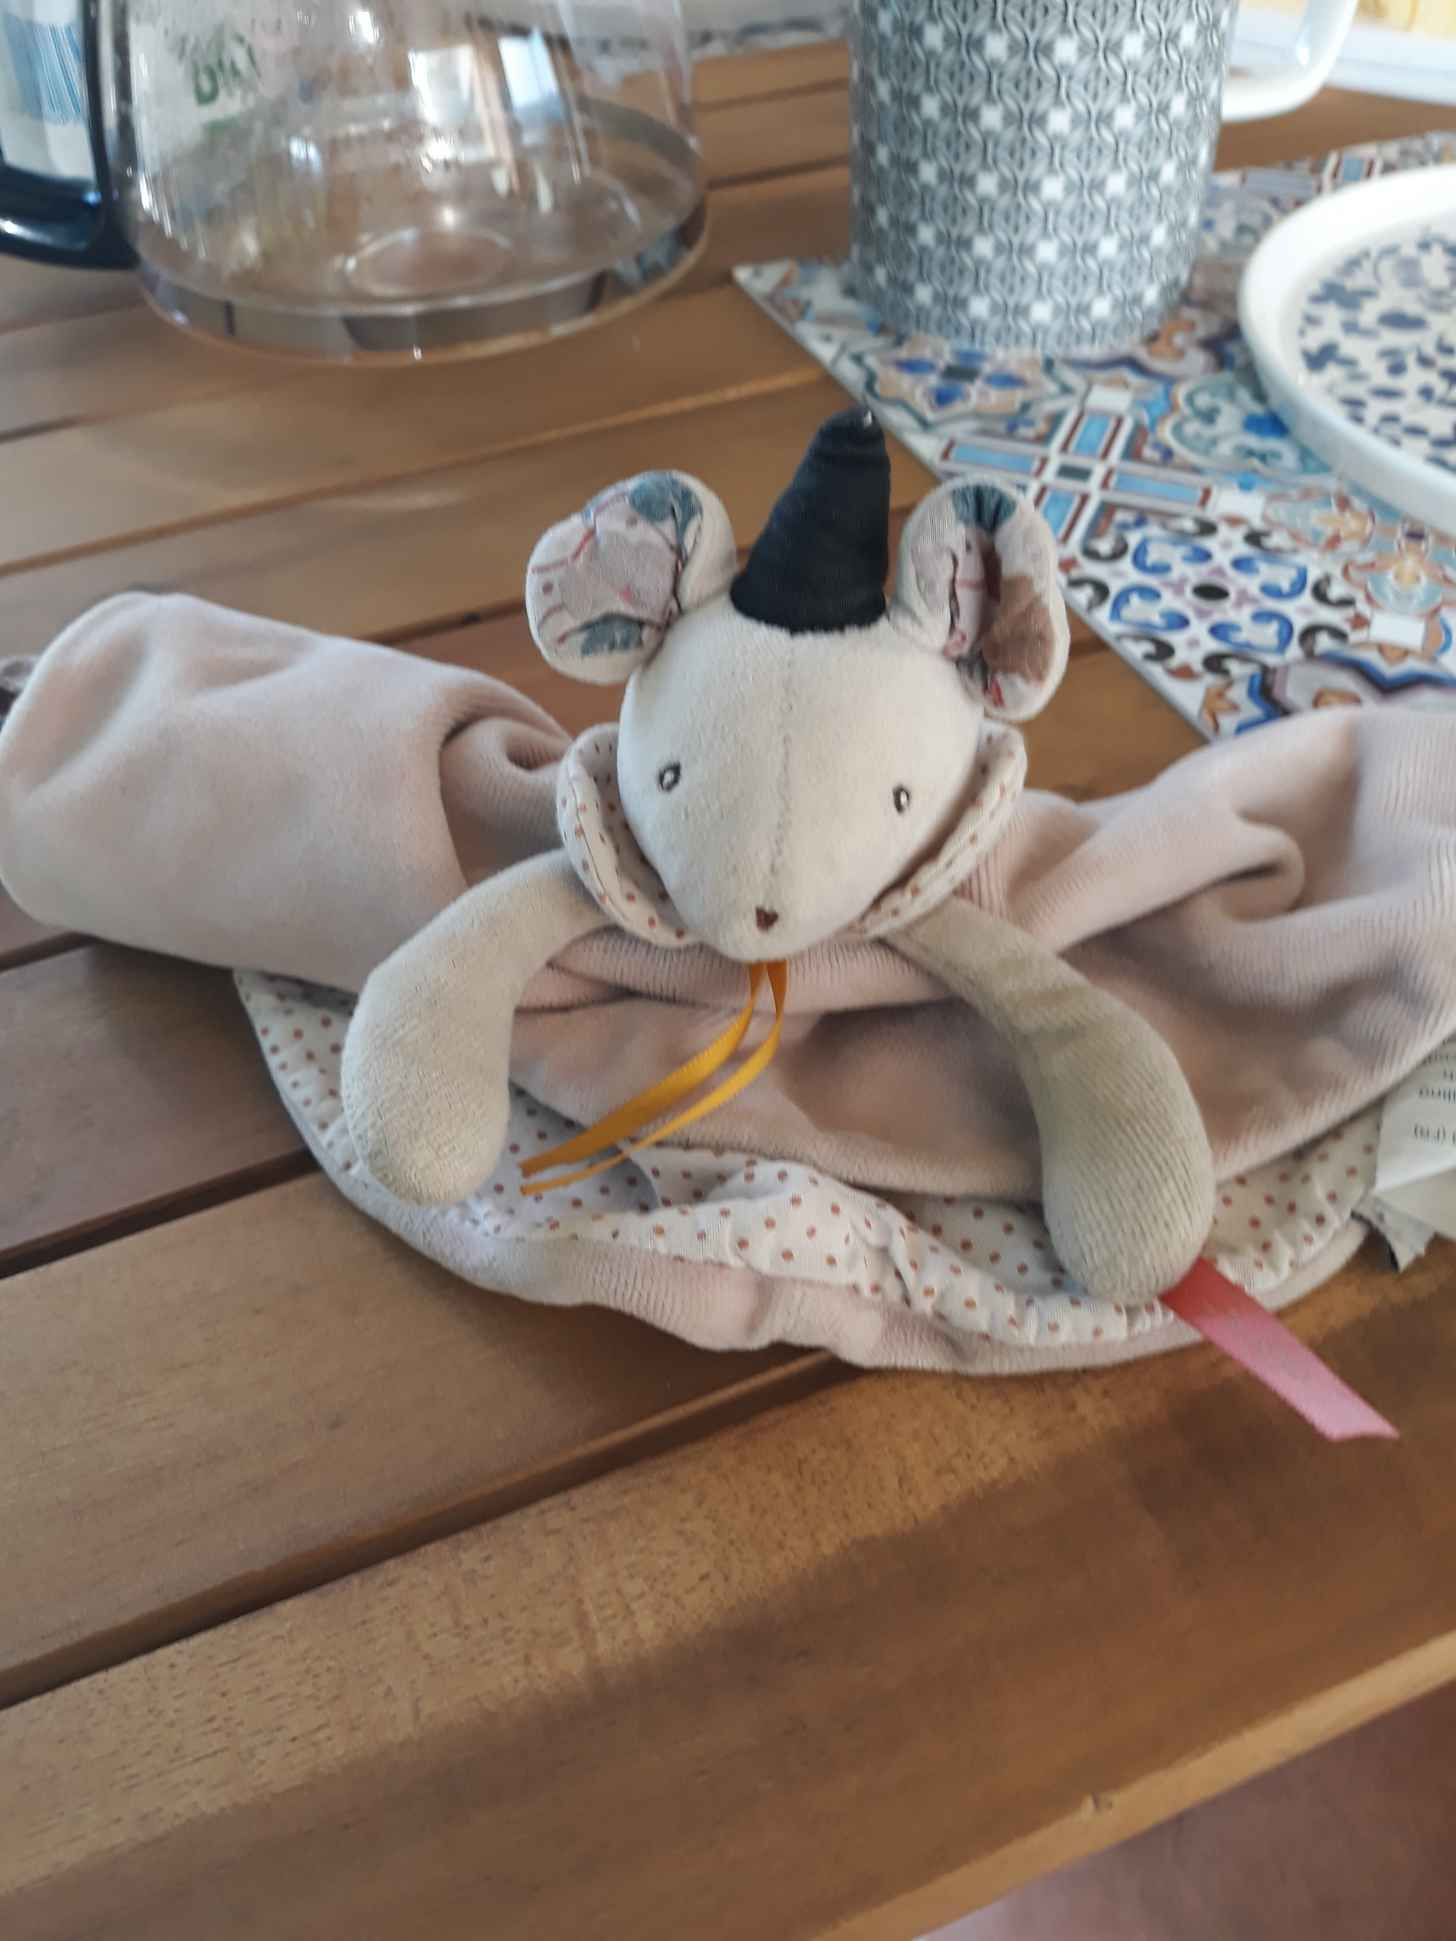 Trouvé - Doudou - Saint-Tropez, France - Sherlook.fr